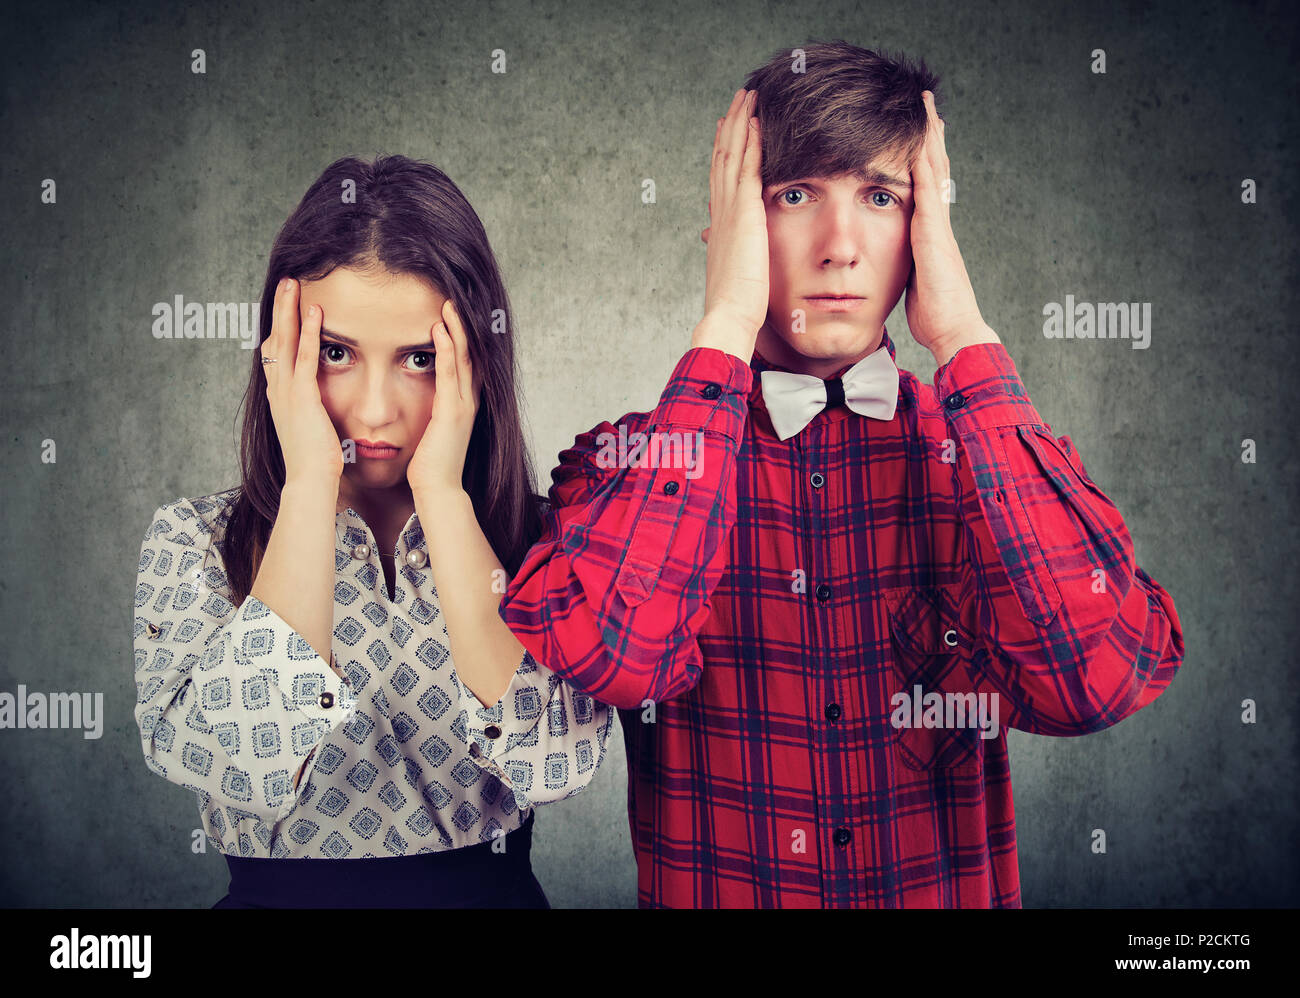 Young man and woman in misunderstanding looking upset and having conflict - Stock Image